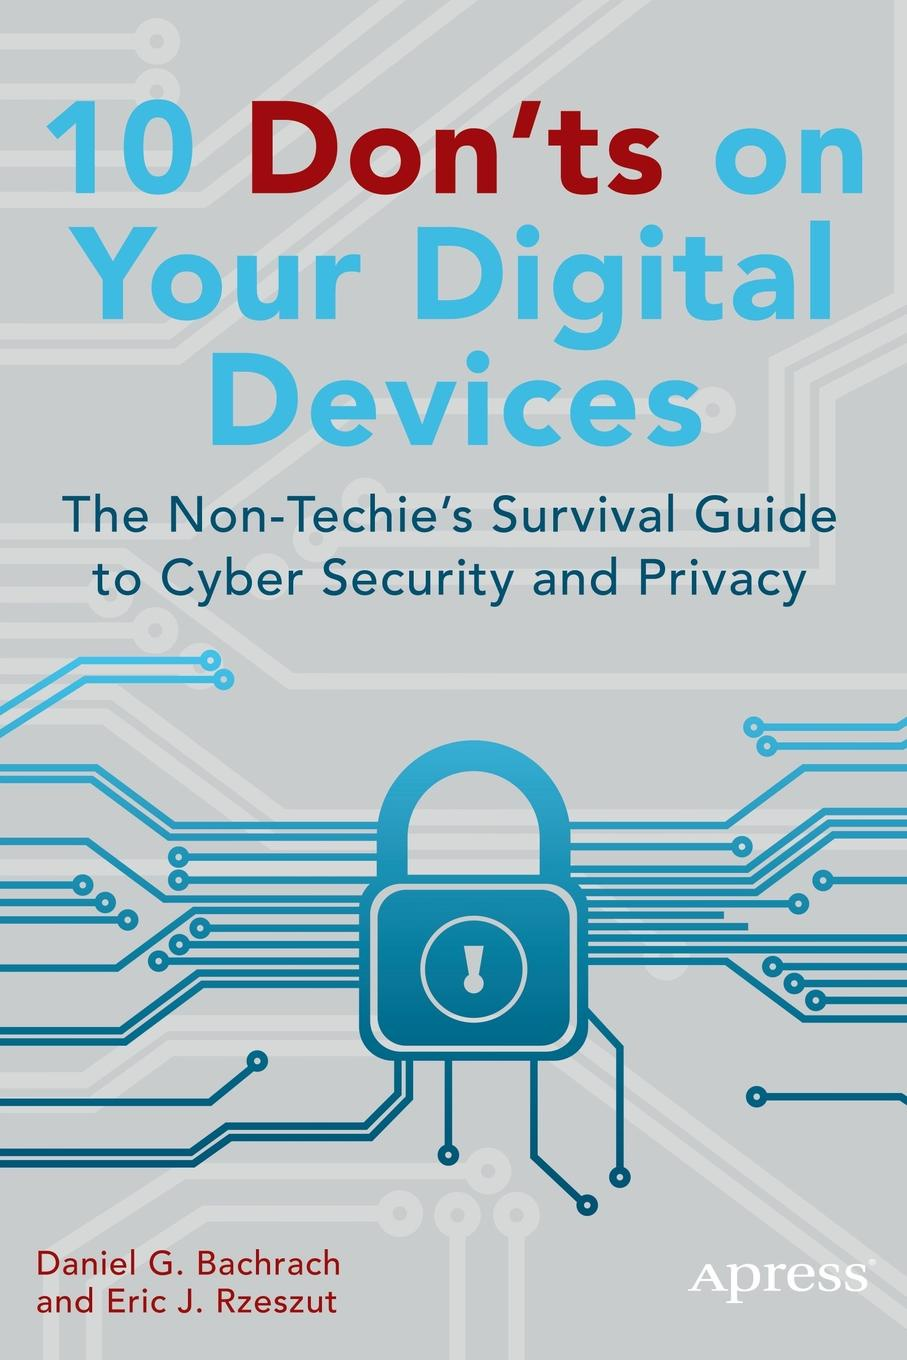 Eric Rzeszut, Daniel Bachrach 10 Dont's on Your Digital Devices. The Non-Techie's Survival Guide to Cyber Security and Privacy rebecca branstetter the school psychologist s survival guide